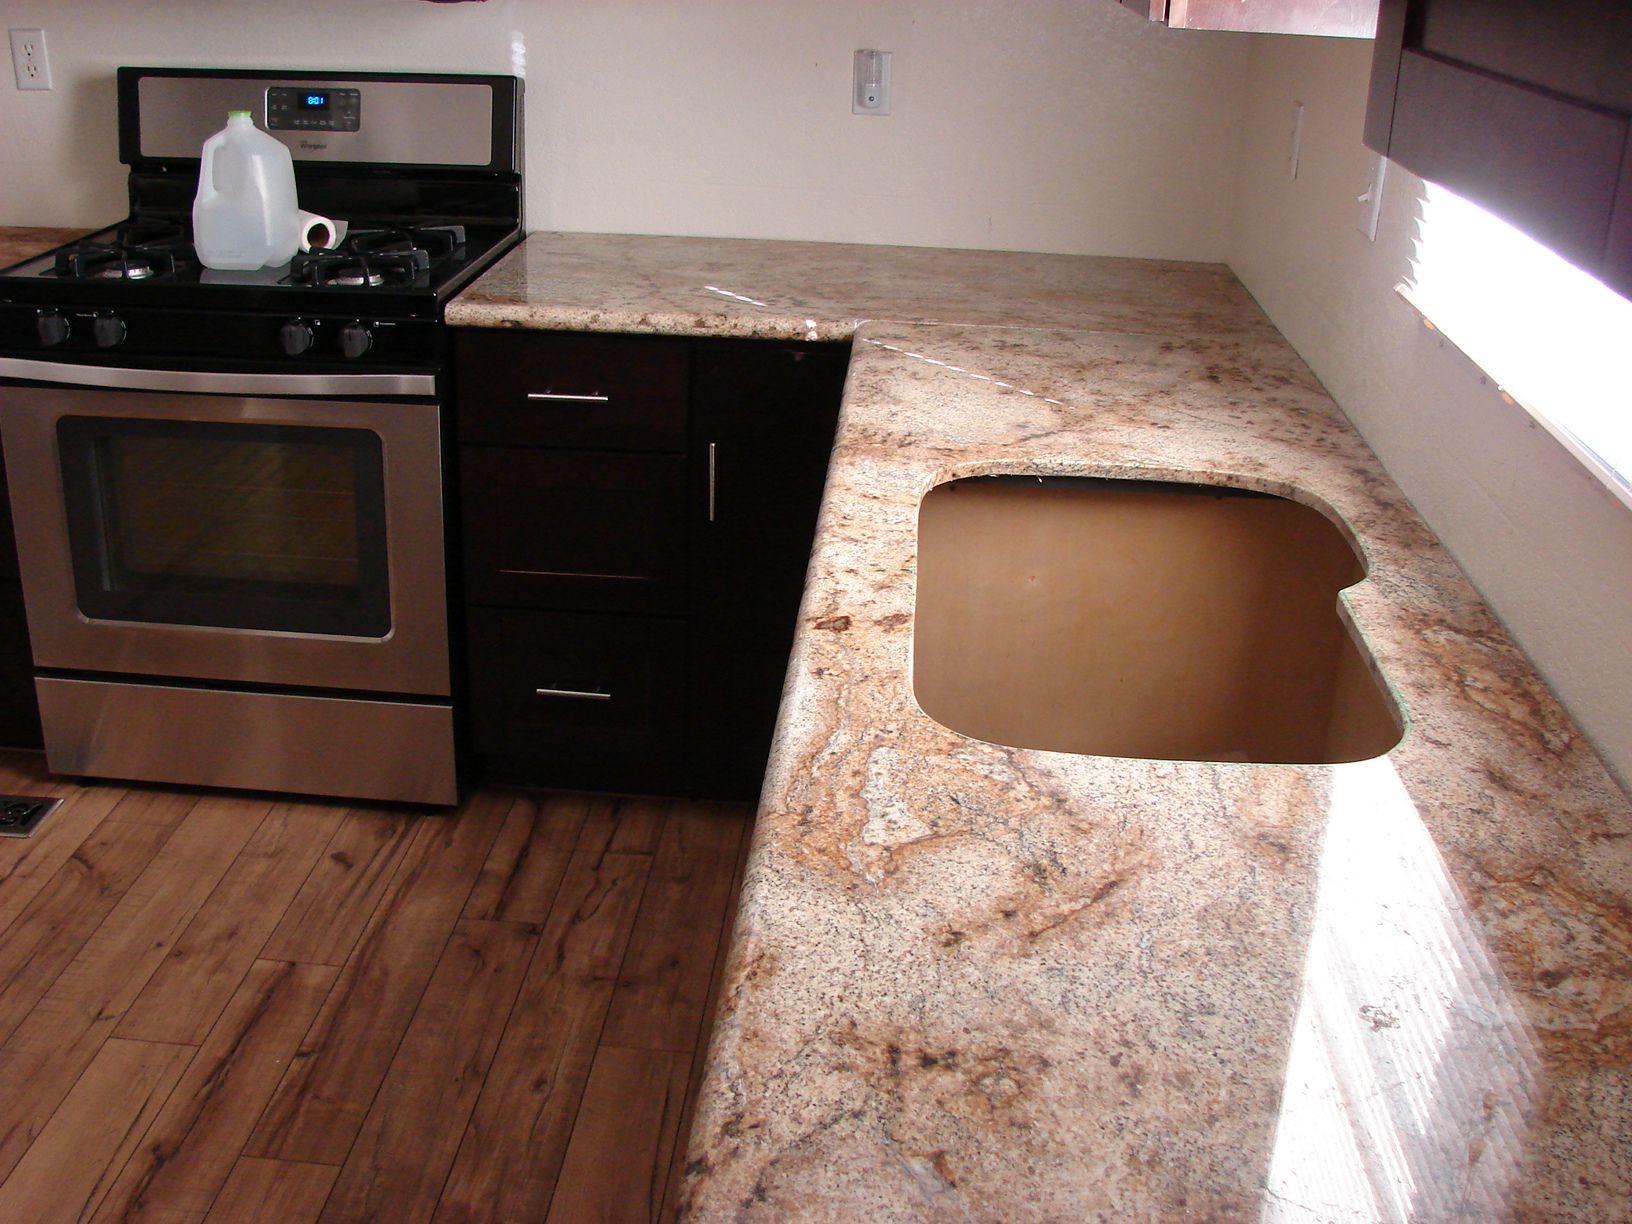 Average cost for granite counter tops phoenix 2014 Granite countertops price per square foot